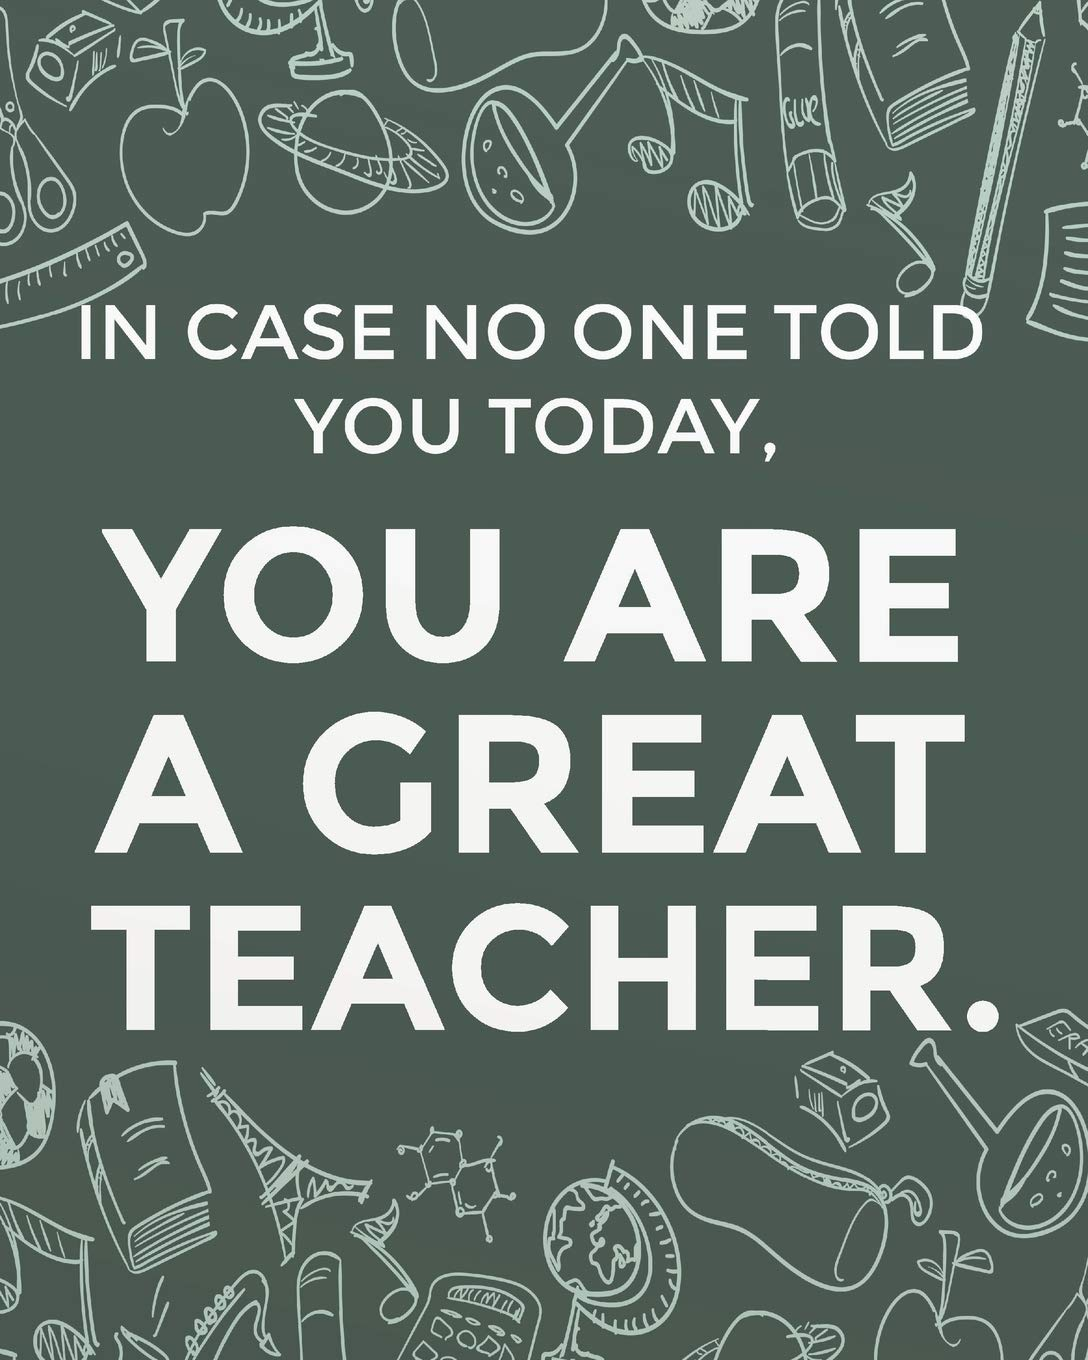 In Case No One Told You Today You Are A Great Teacher Teacher Planner Monthly And Weekly Datebook Calendar Book With Inspirational Quotes Dated July 2020 2019 2020 Teacher Planner Series K